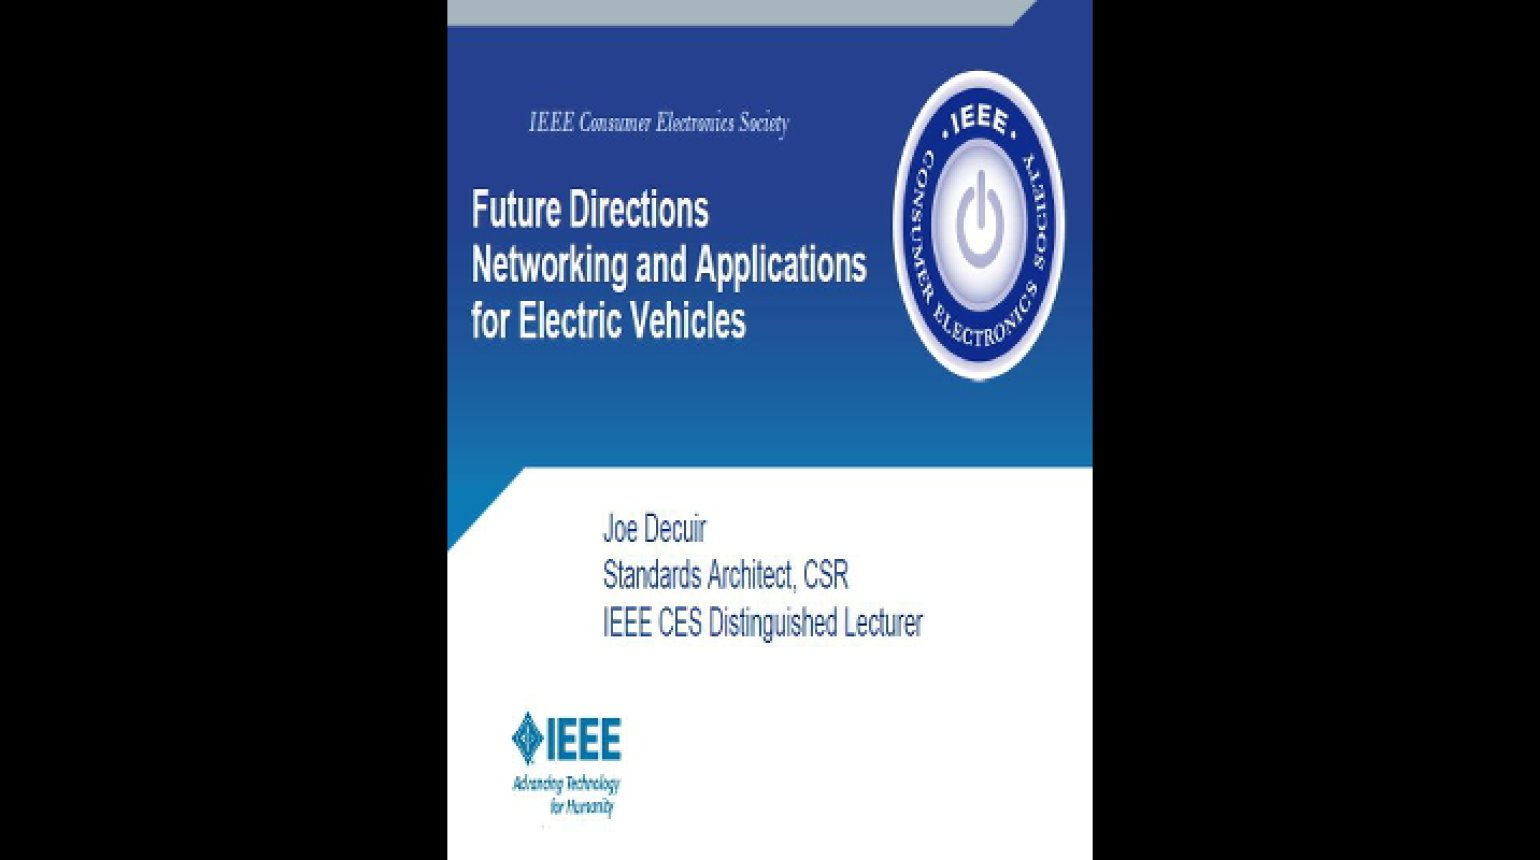 Video - Future Directions Networking and Applications for Electric Vehicles